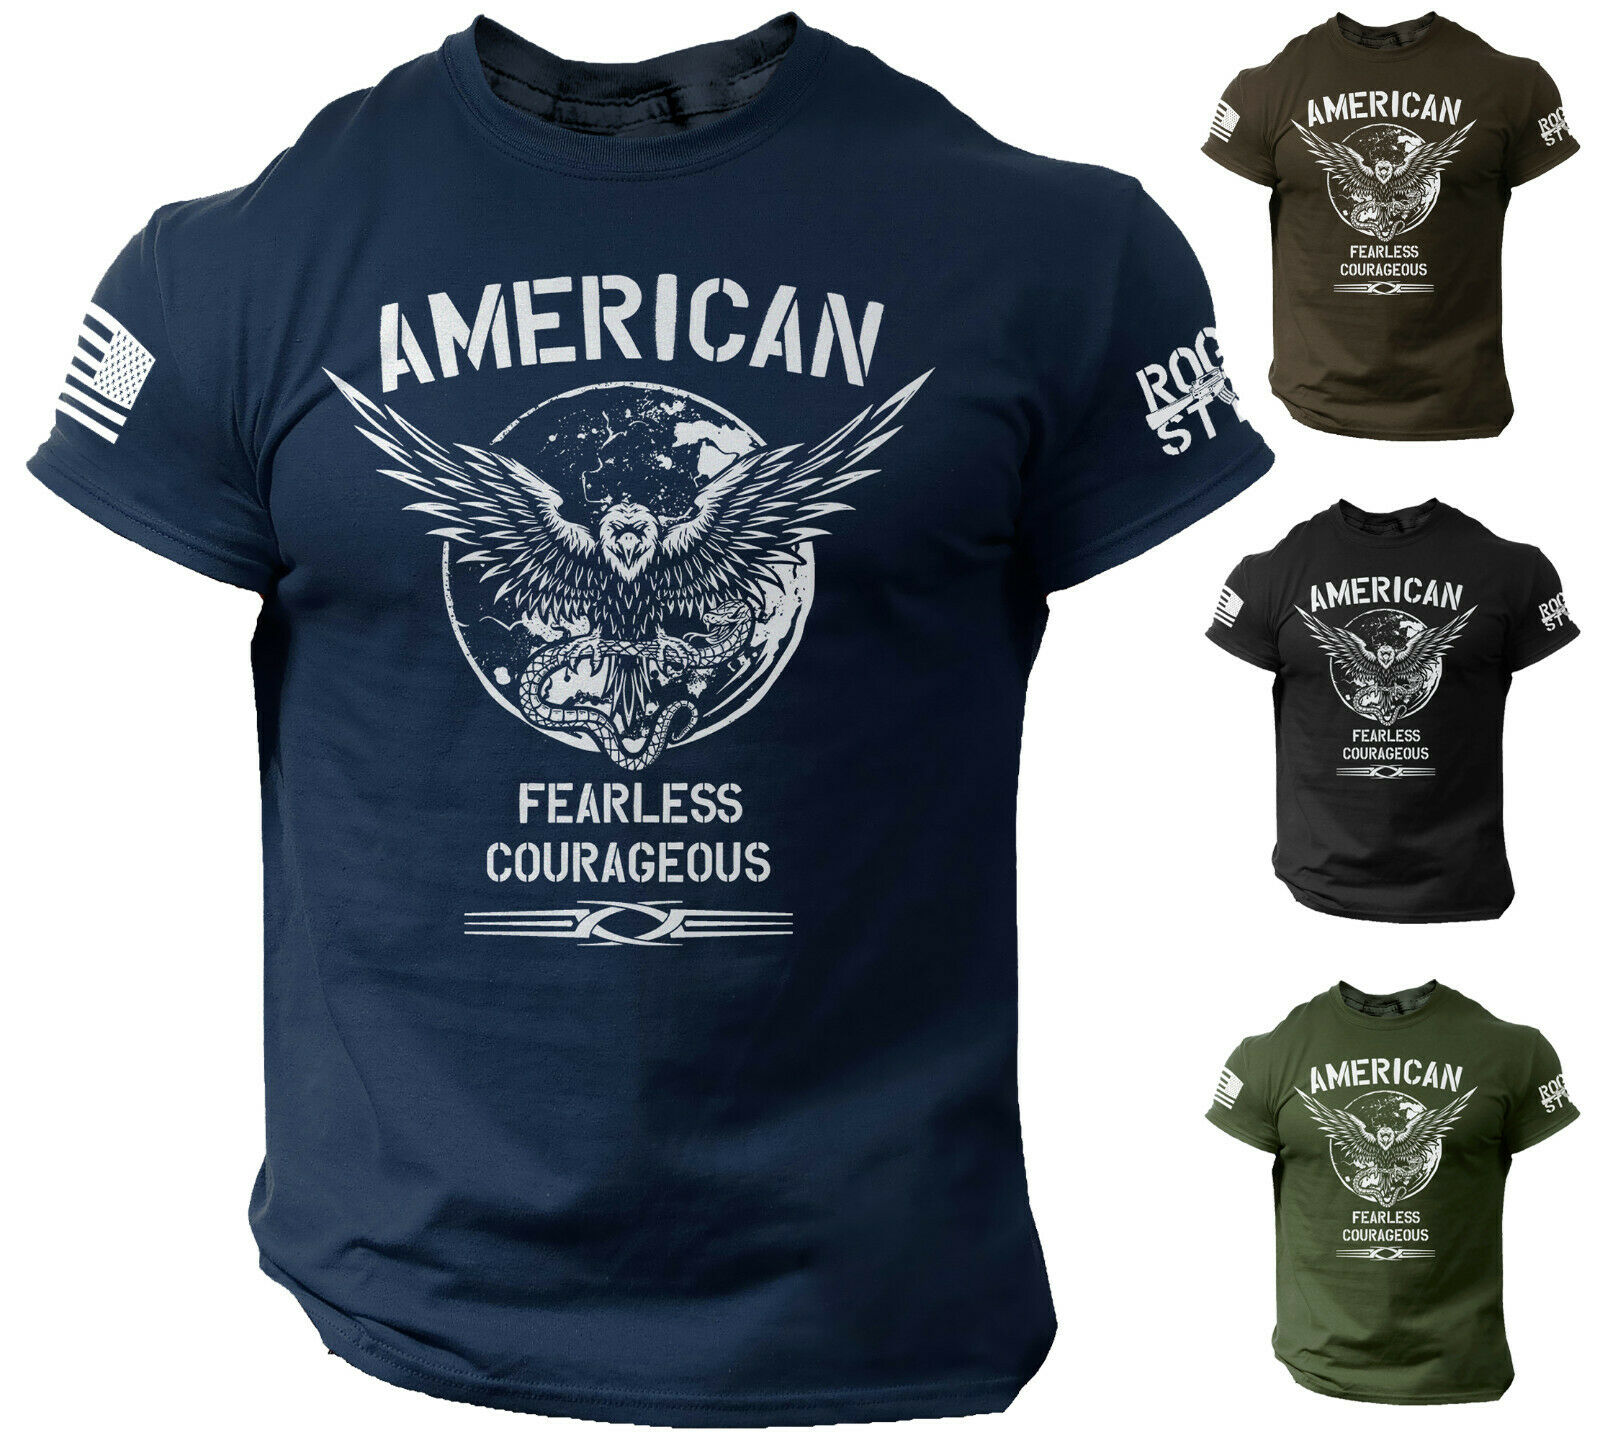 American Men's T Shirt Fearless Courageous USA Warrior Tee Rogue Style Clothing, Shoes & Accessories